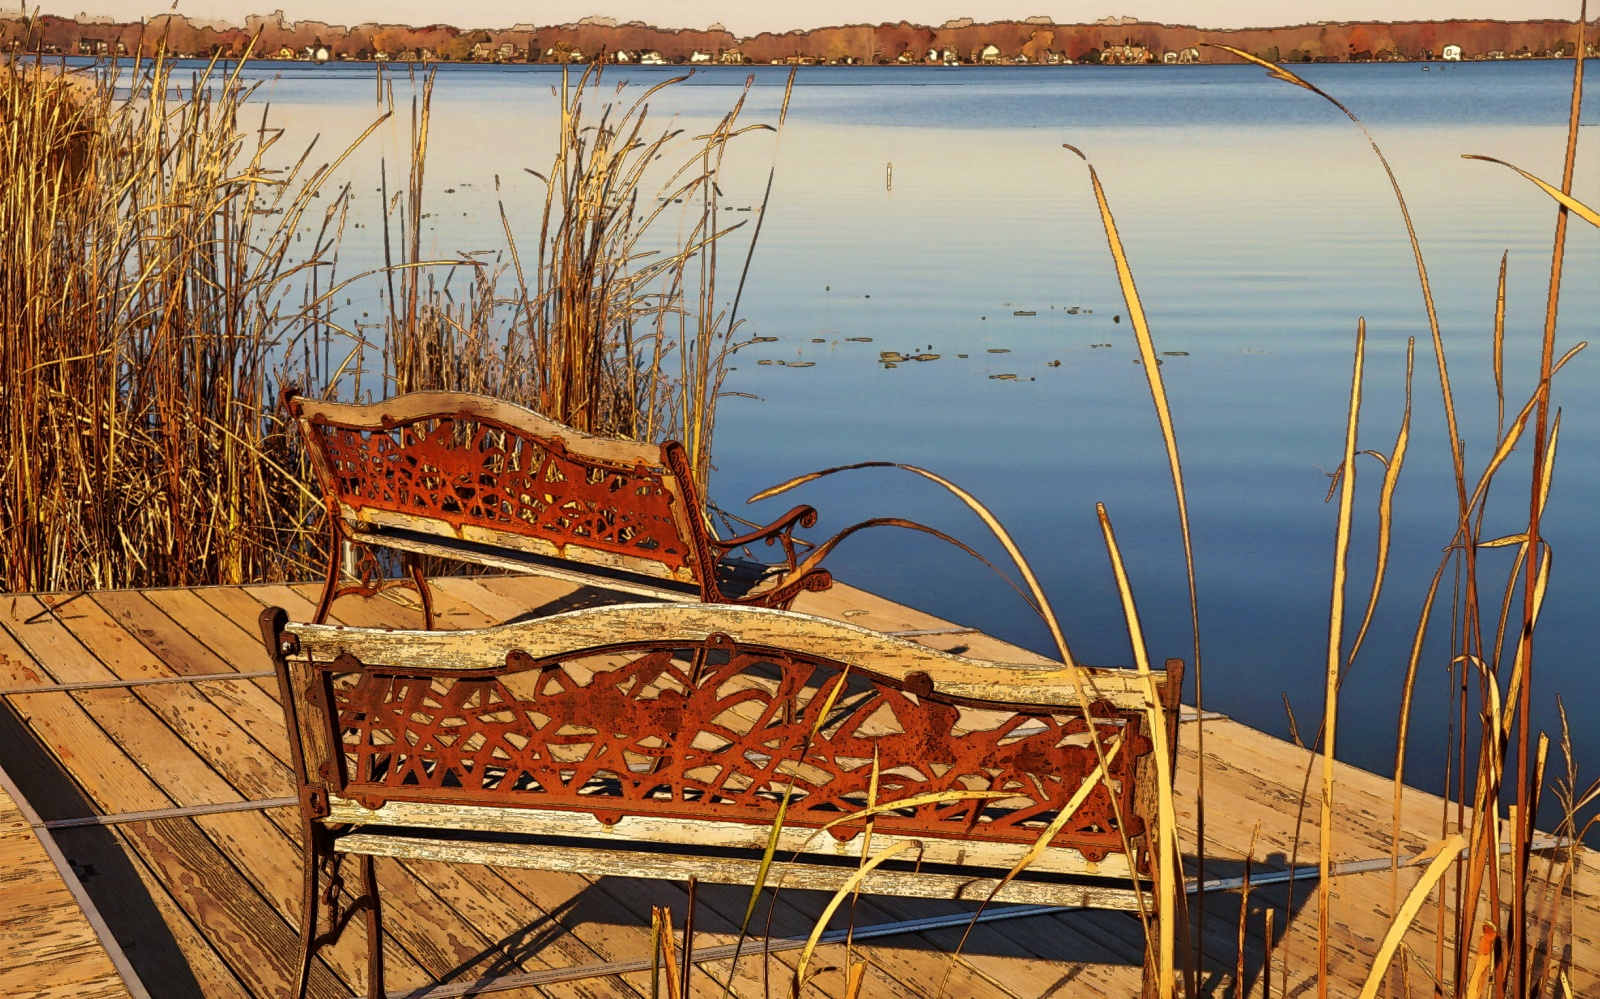 Saving When Interest Rates Are Low. Iron bench on dock by lake in the fall